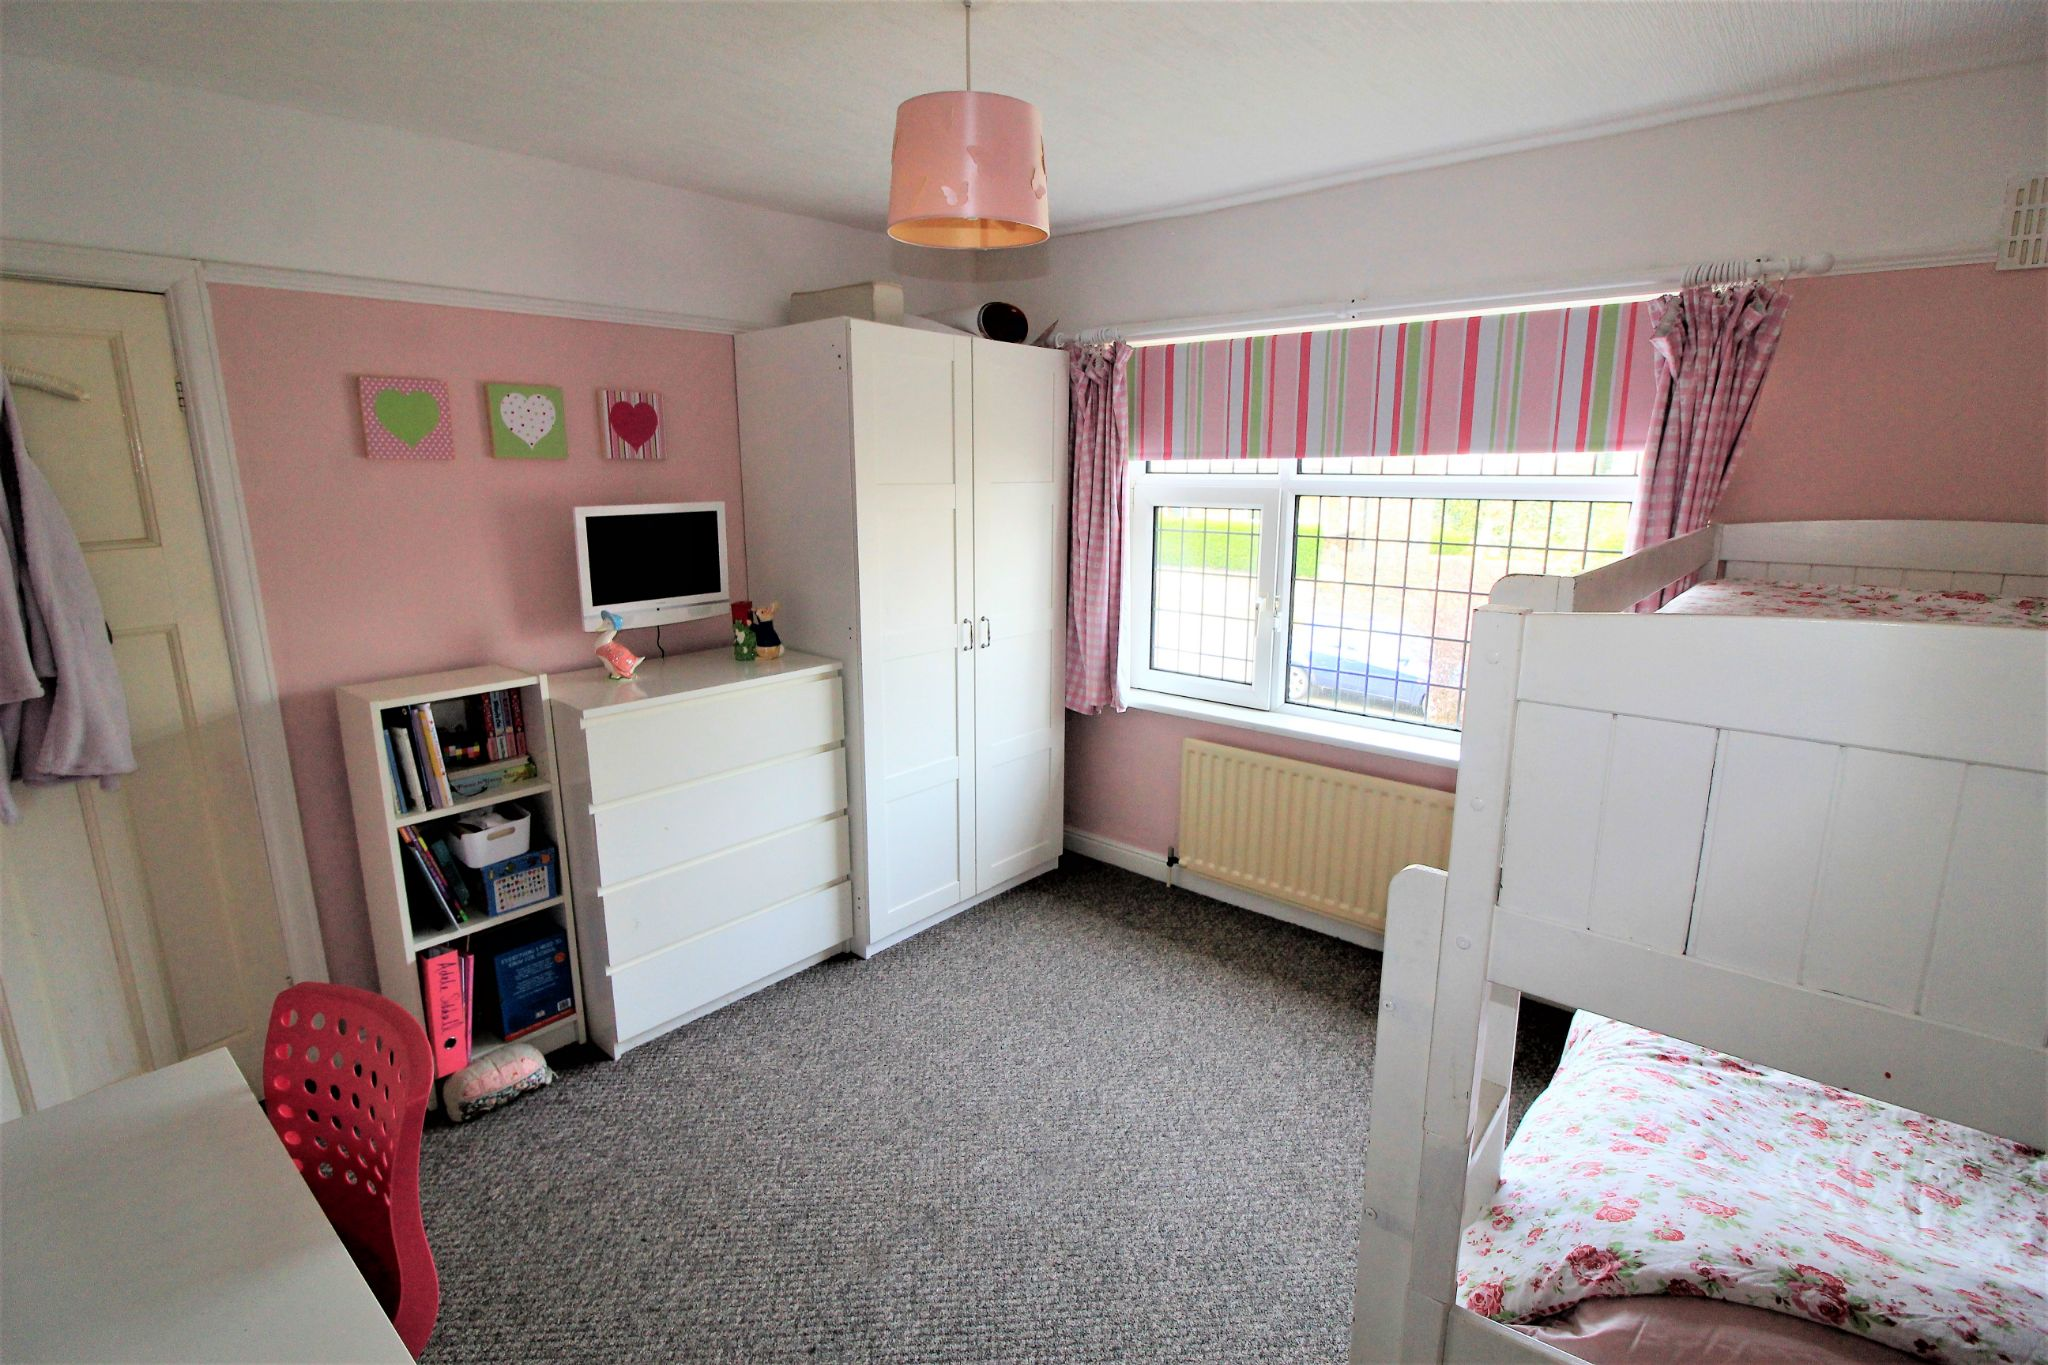 3 bedroom town house SSTC in Halifax - Photograph 17